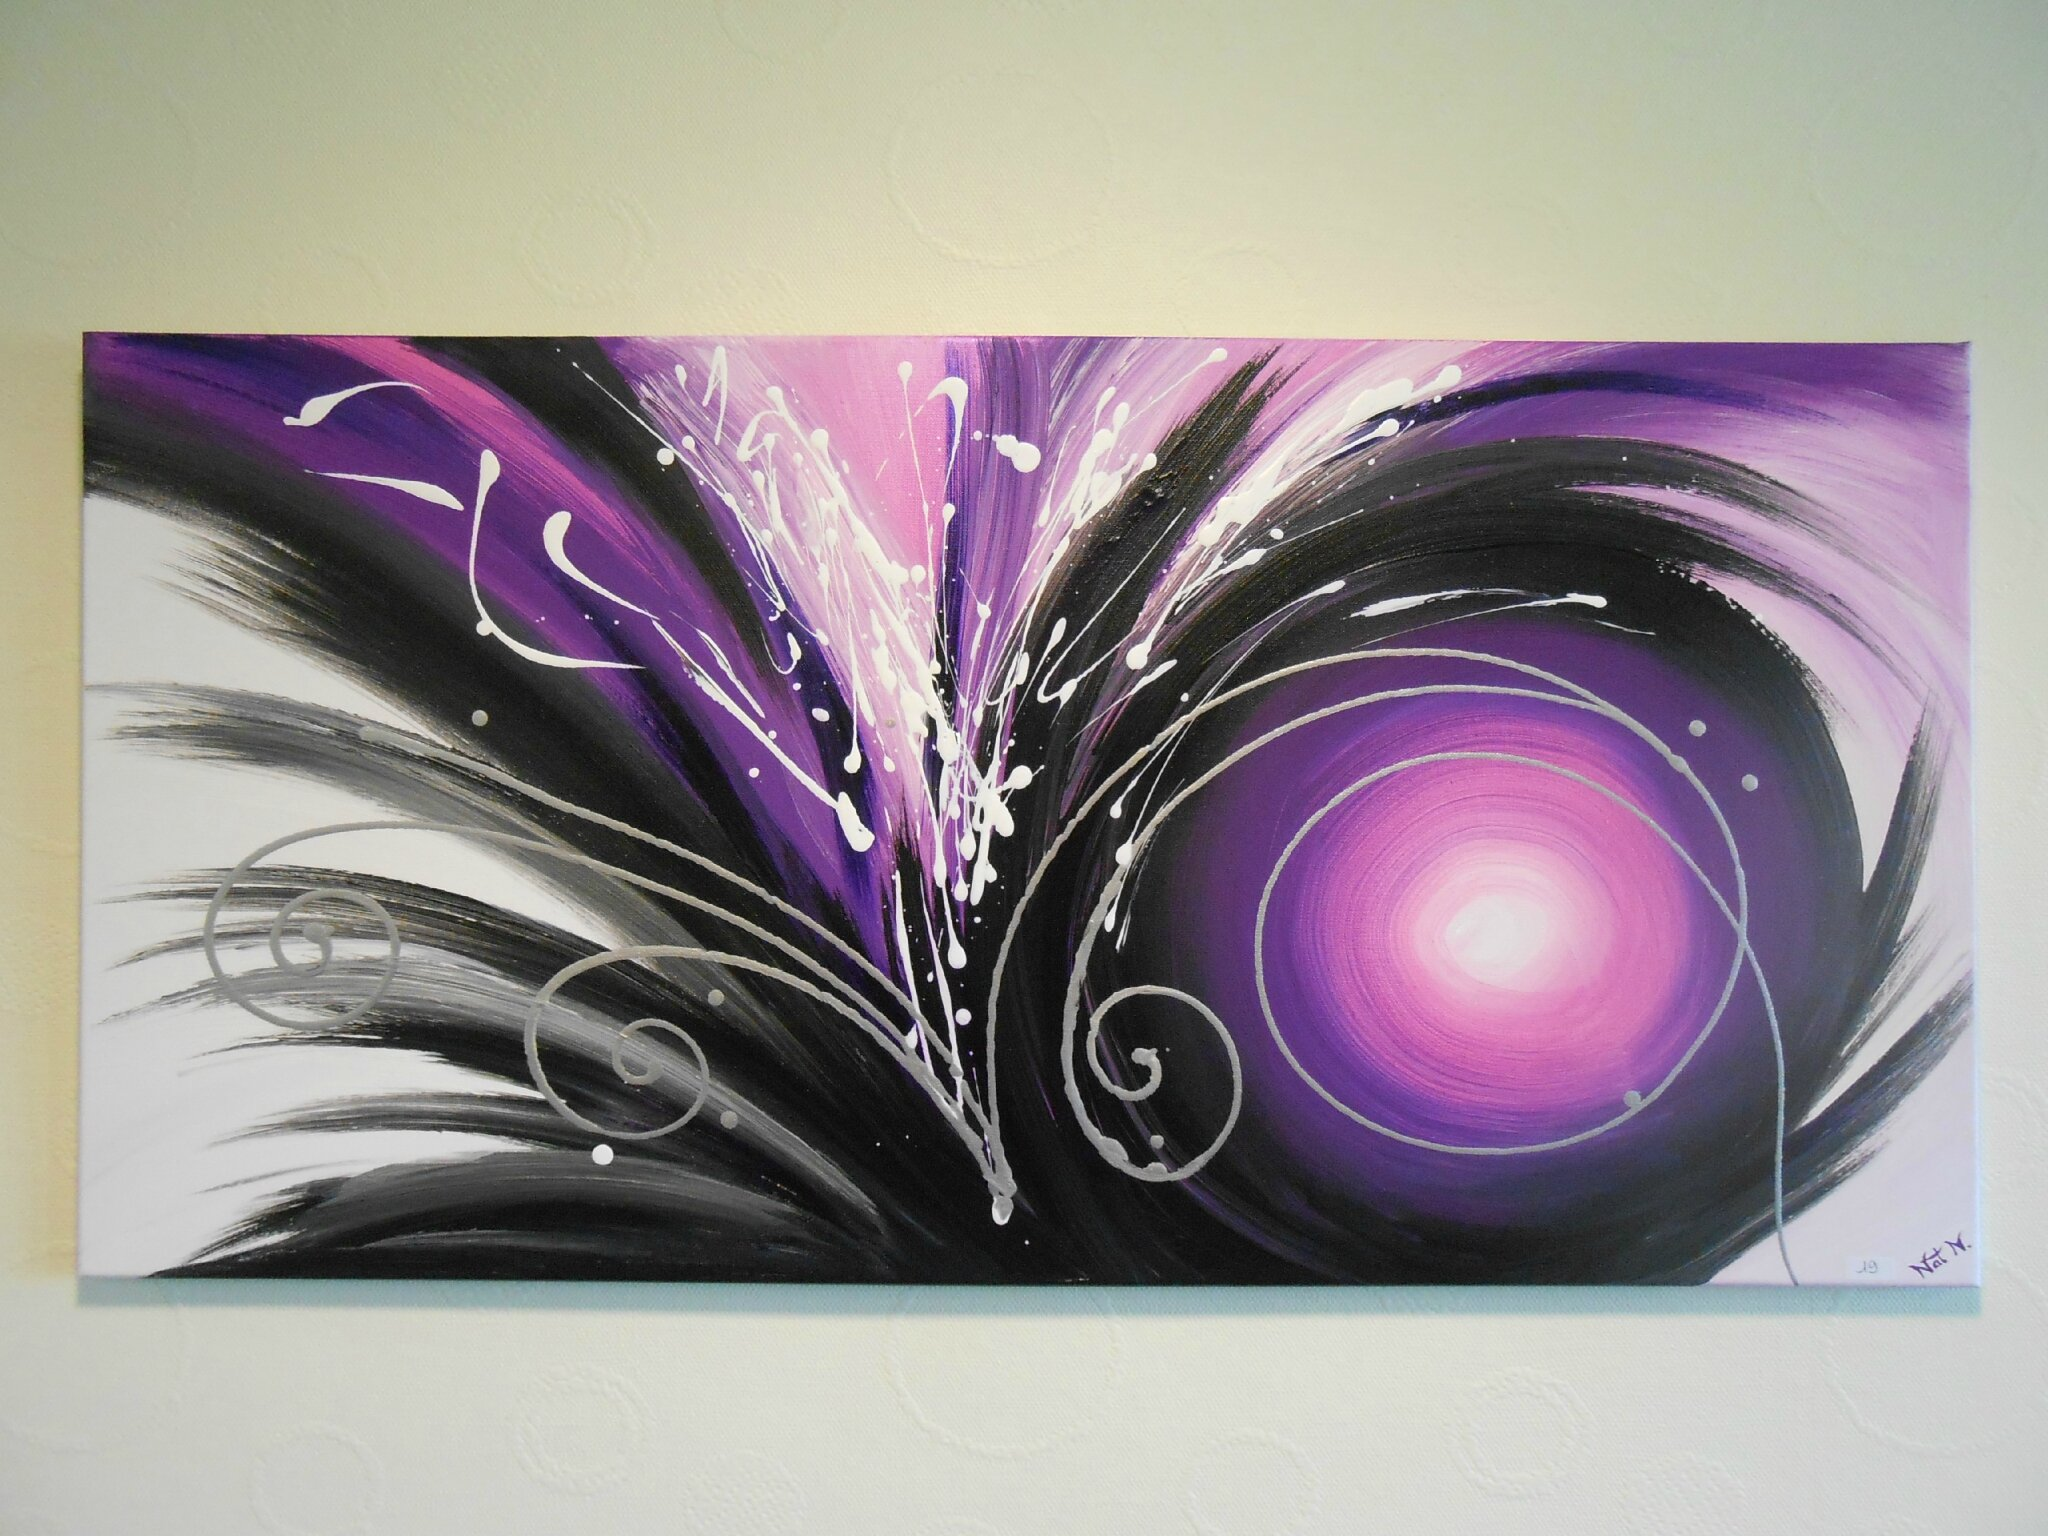 MAGIC PURPLE 2 - 50 x 100